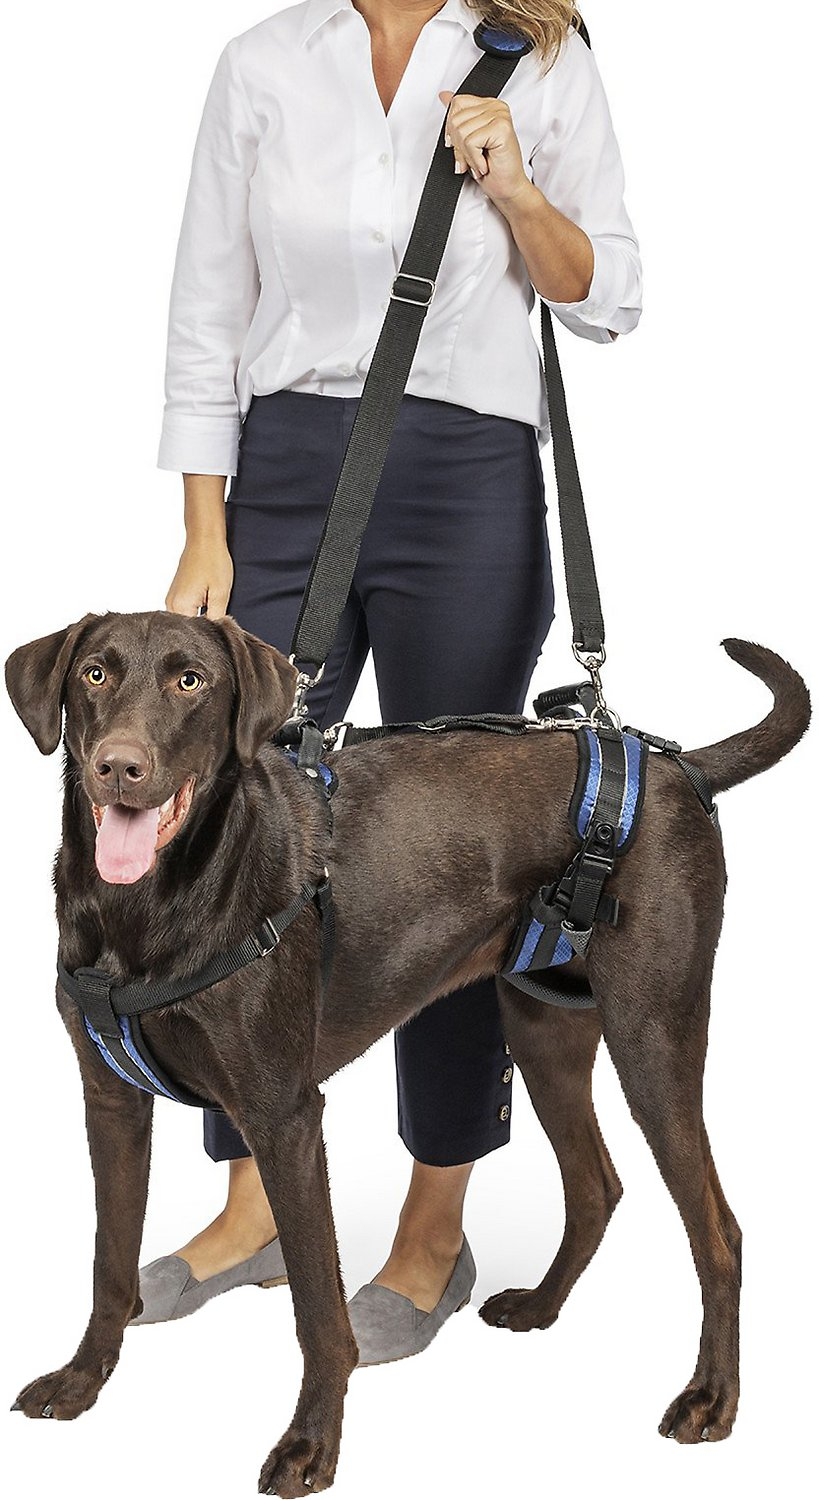 Solvit Carelift Full Front Back Lifting Aid Mobility Dog Harness Hover To Zoom